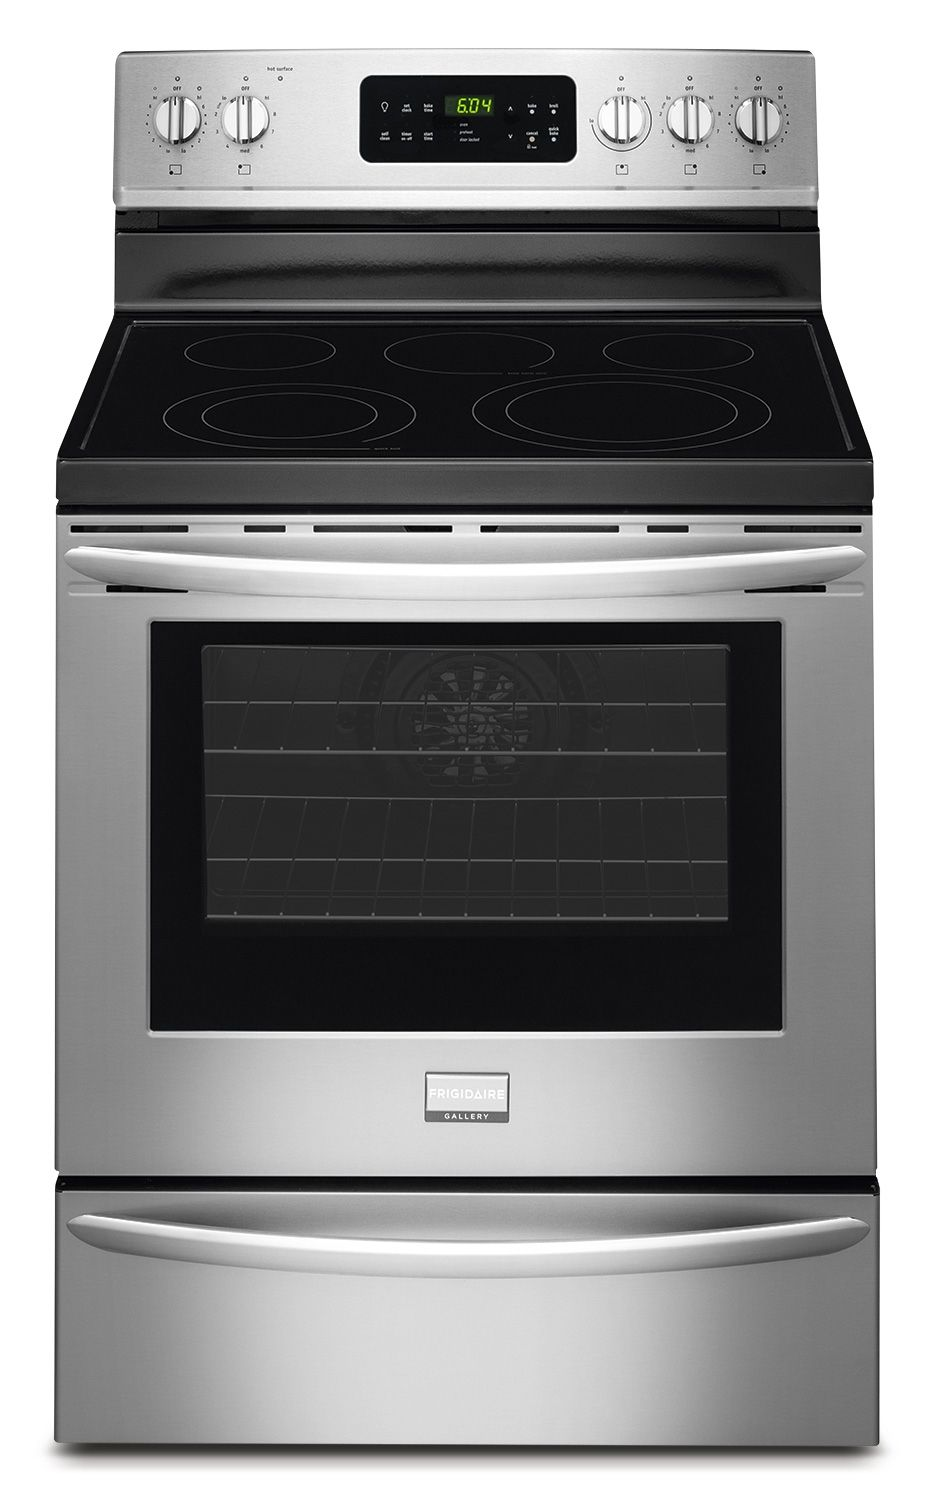 Frigidaire Gallery Electric Fan Convection Range Cgef3035rf Frigidaire Gallery Self Cleaning Ovens Electric Range